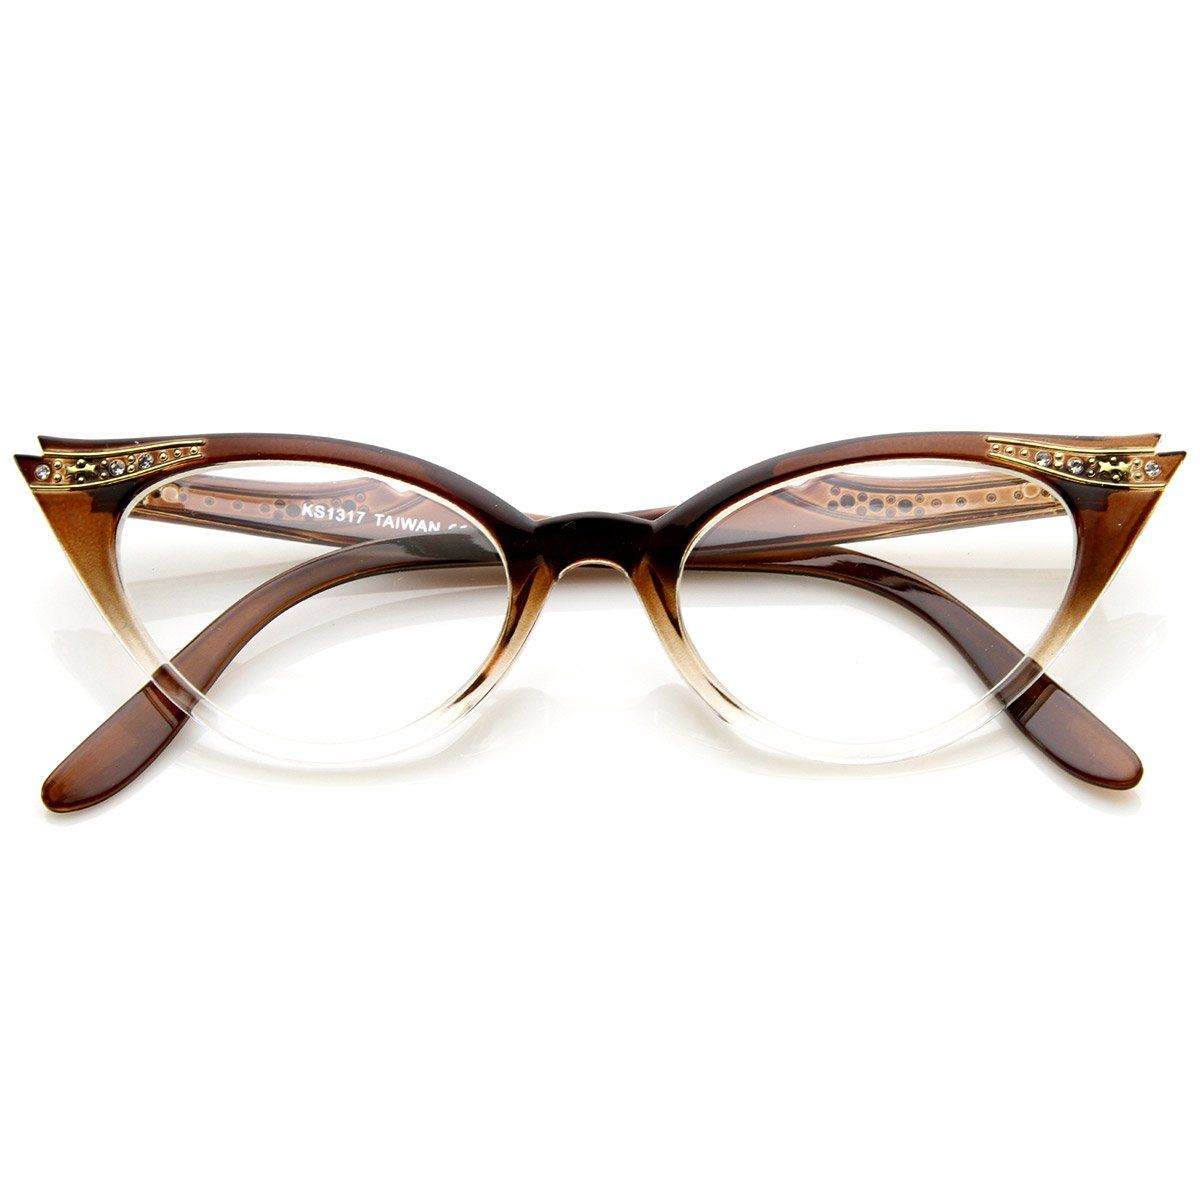 eac14be524 Vintage Style Cateyes 80s Inspired Fashion Clear Lens Cat Eye Glasses With  Rhinestones Color-brown